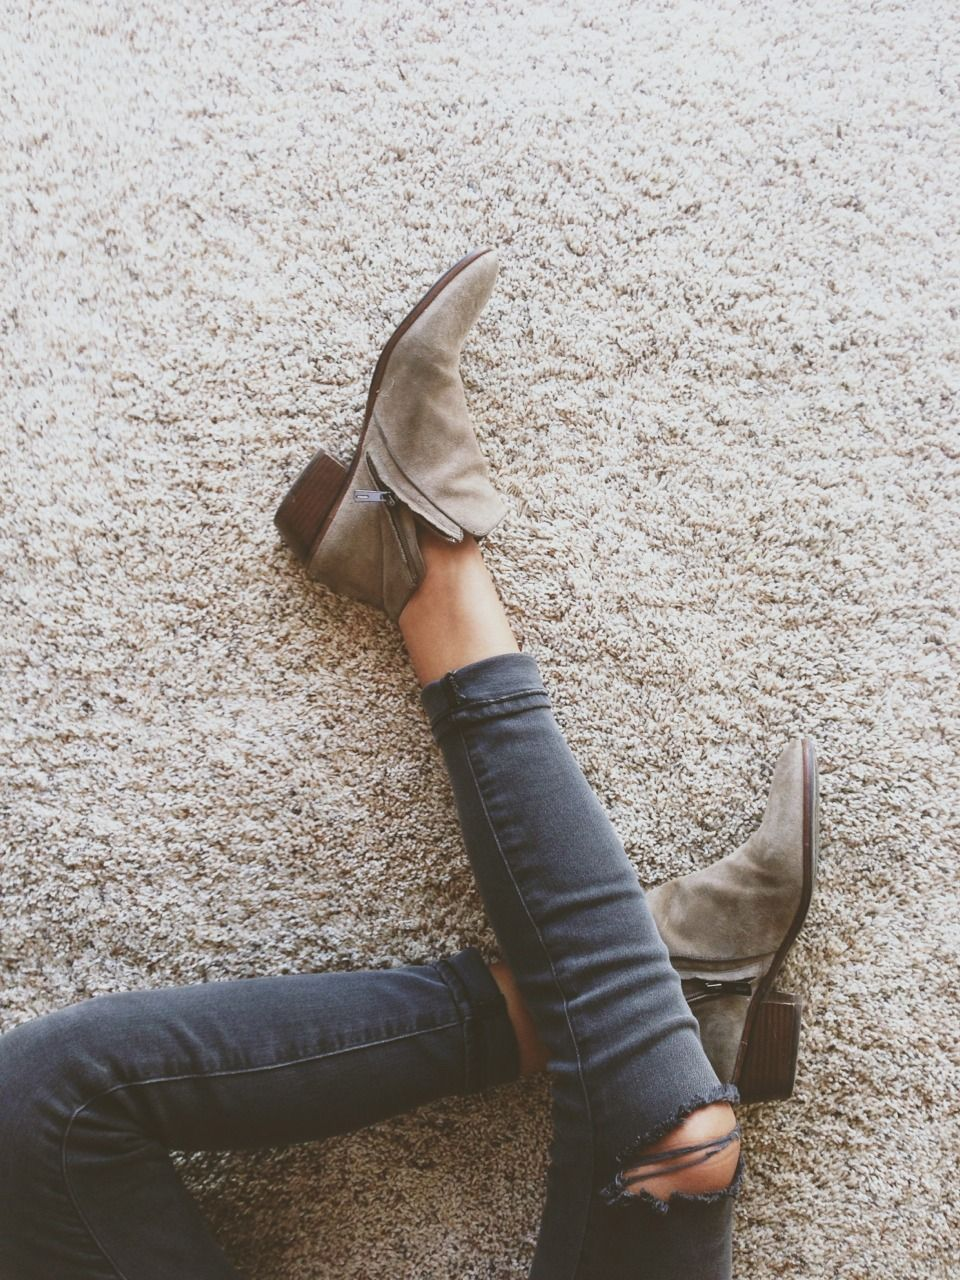 Ripped jeans + booties.